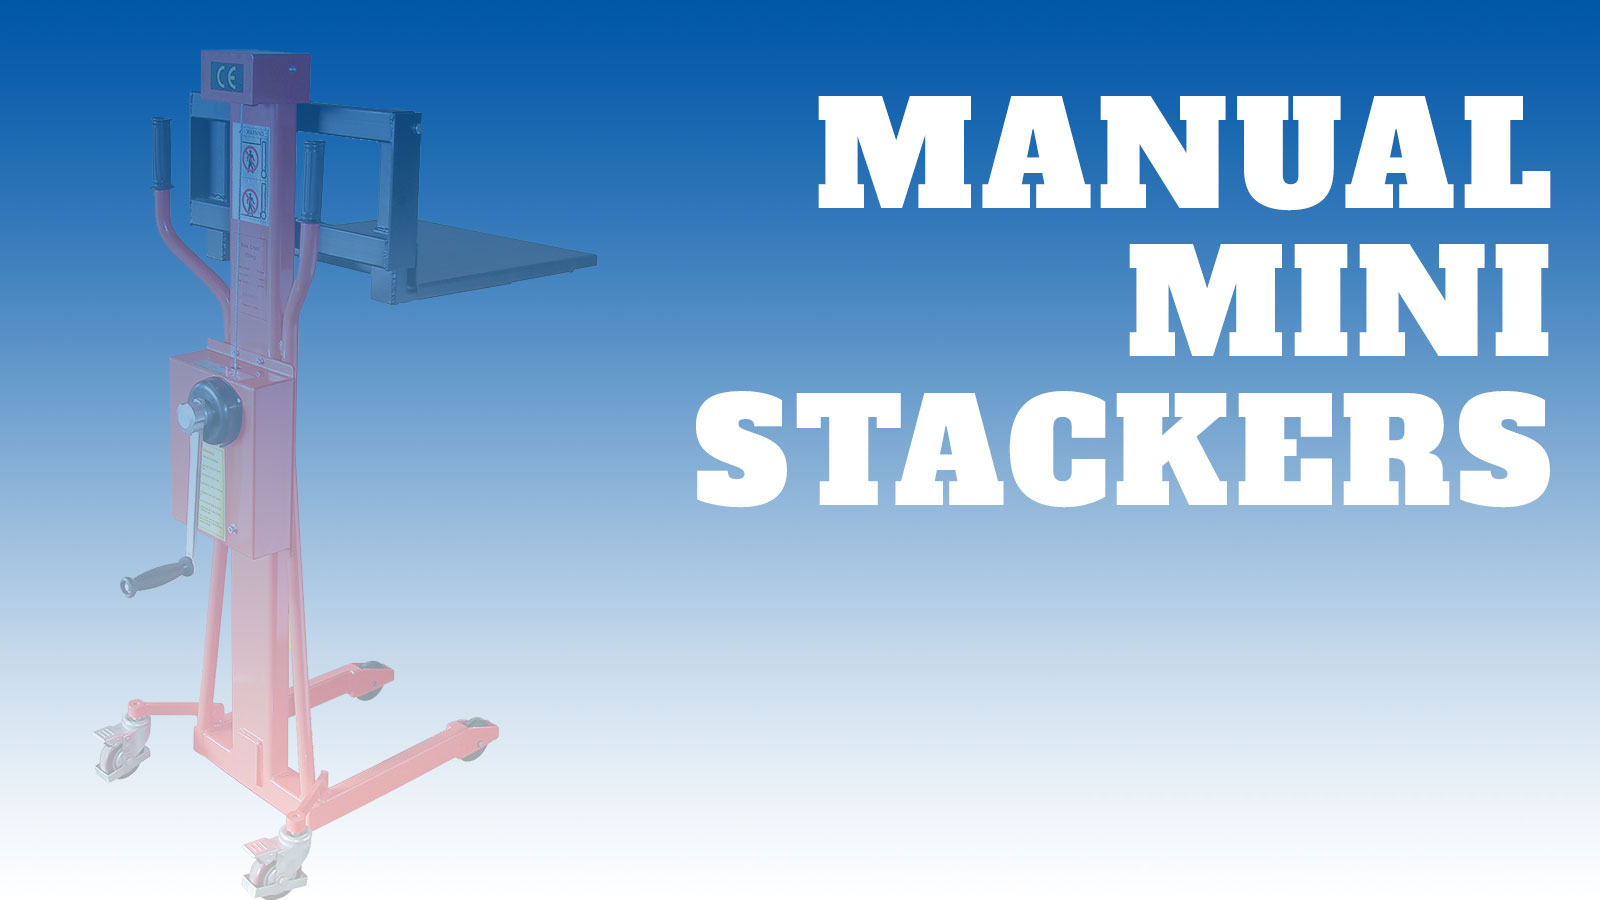 Lifting-Manual-Mini-Stackers